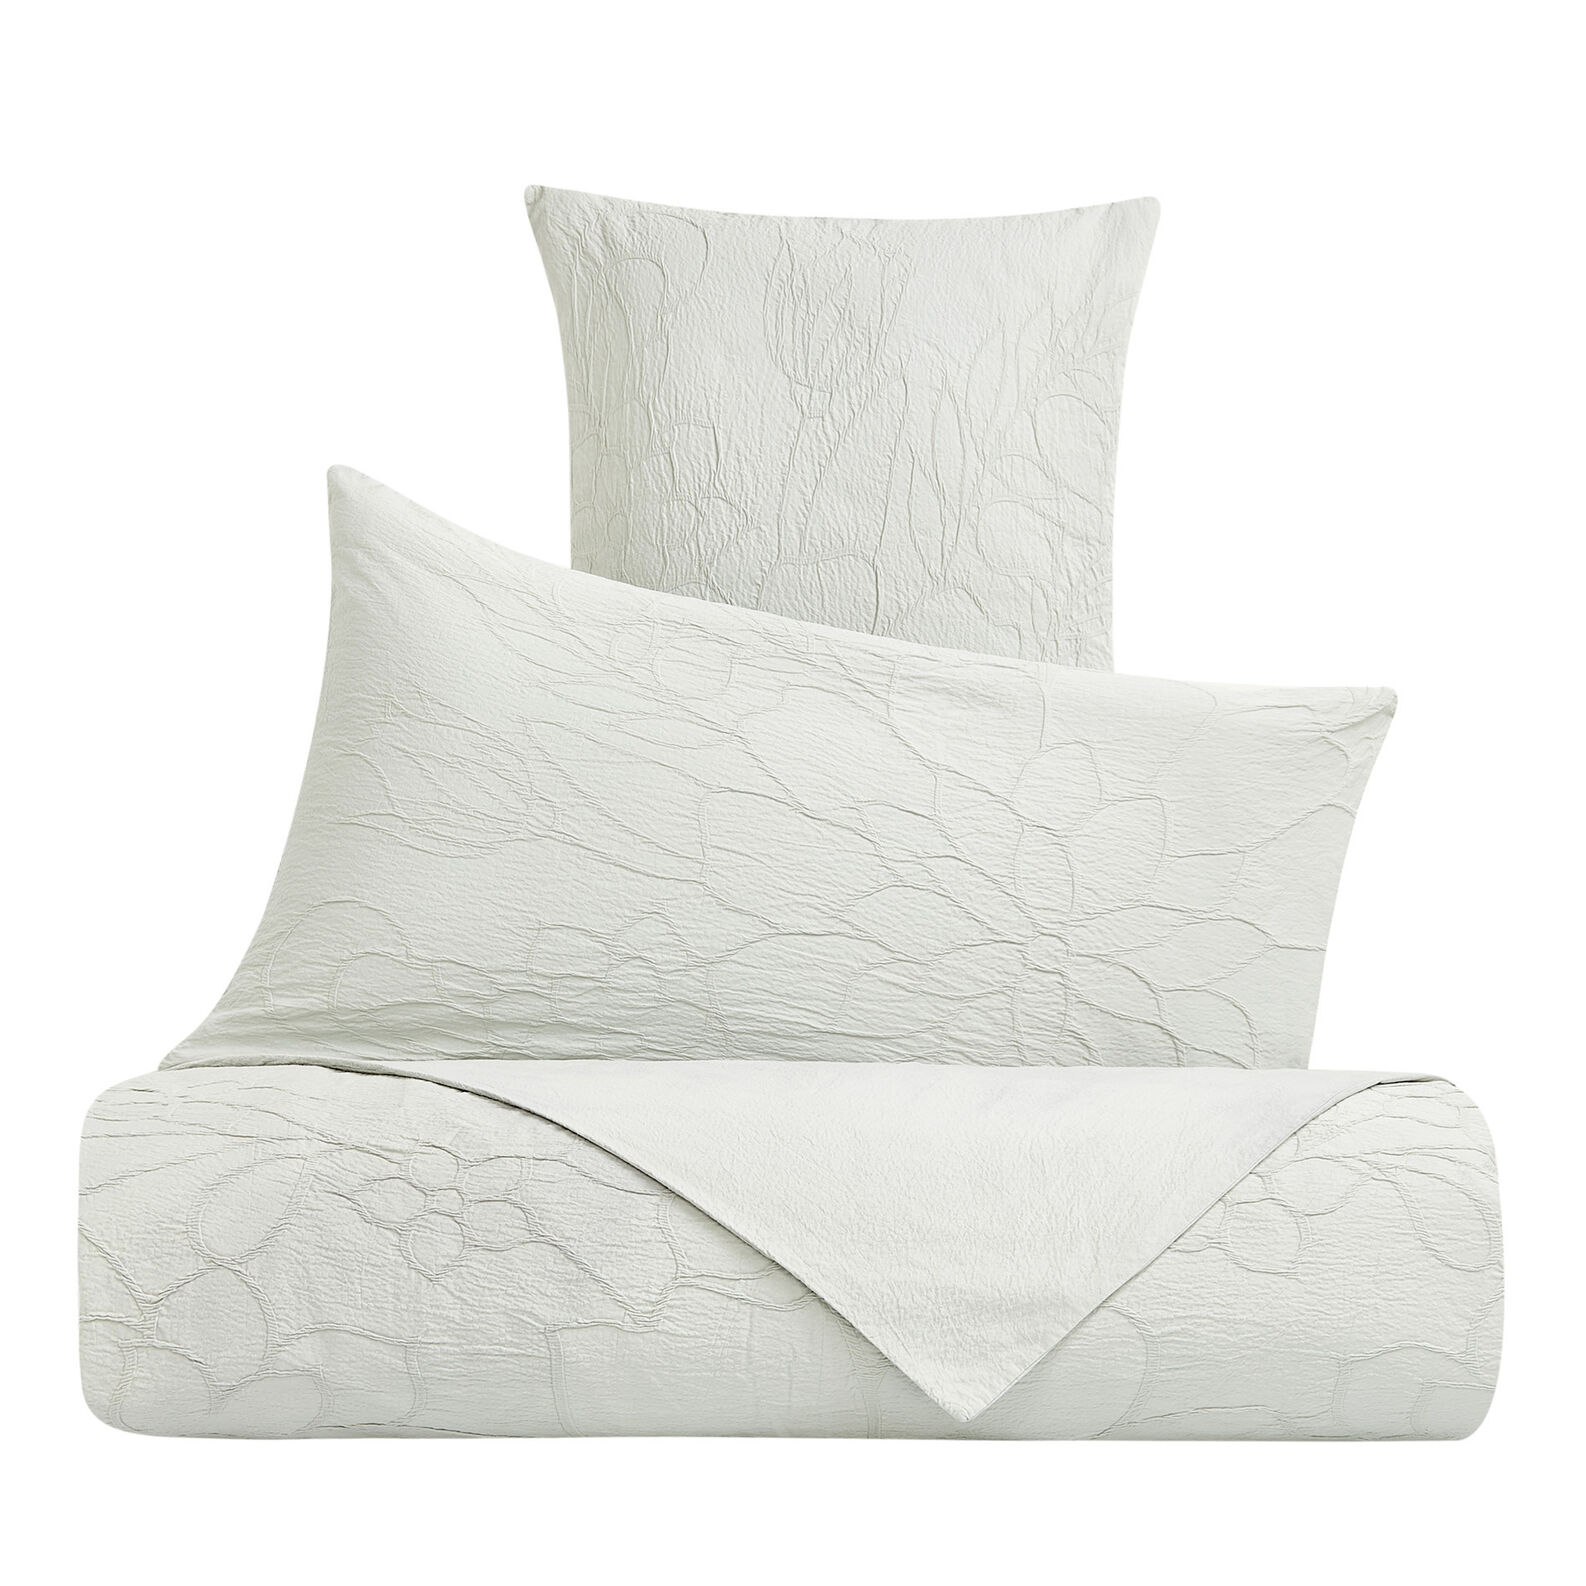 Cotton pillowcase with raised floral pattern